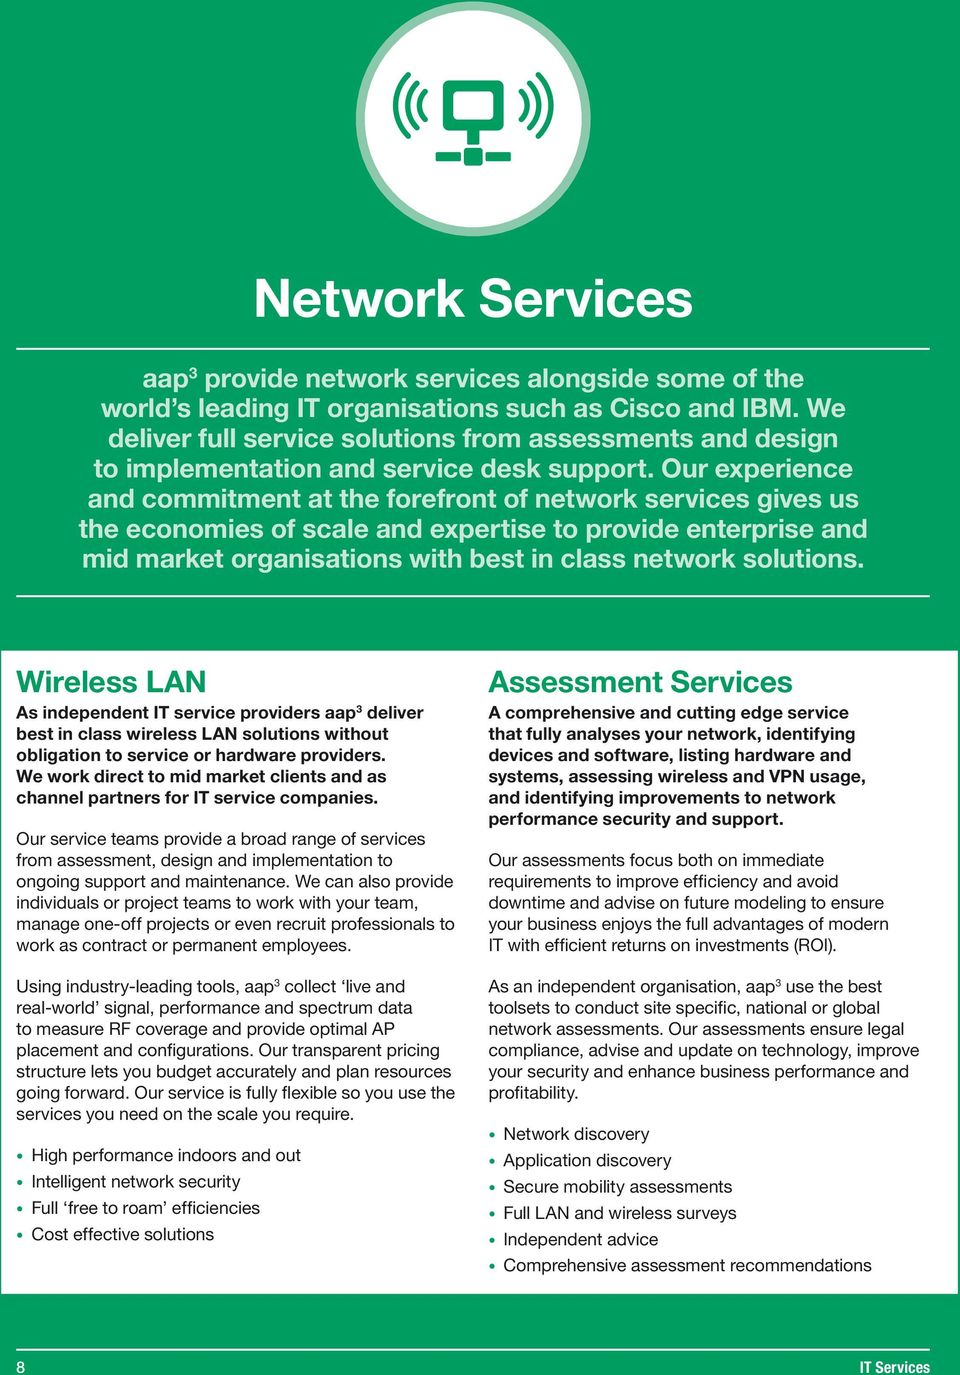 Our experience and commitment at the forefront of network services gives us the economies of scale and expertise to provide enterprise and mid market organisations with best in class network